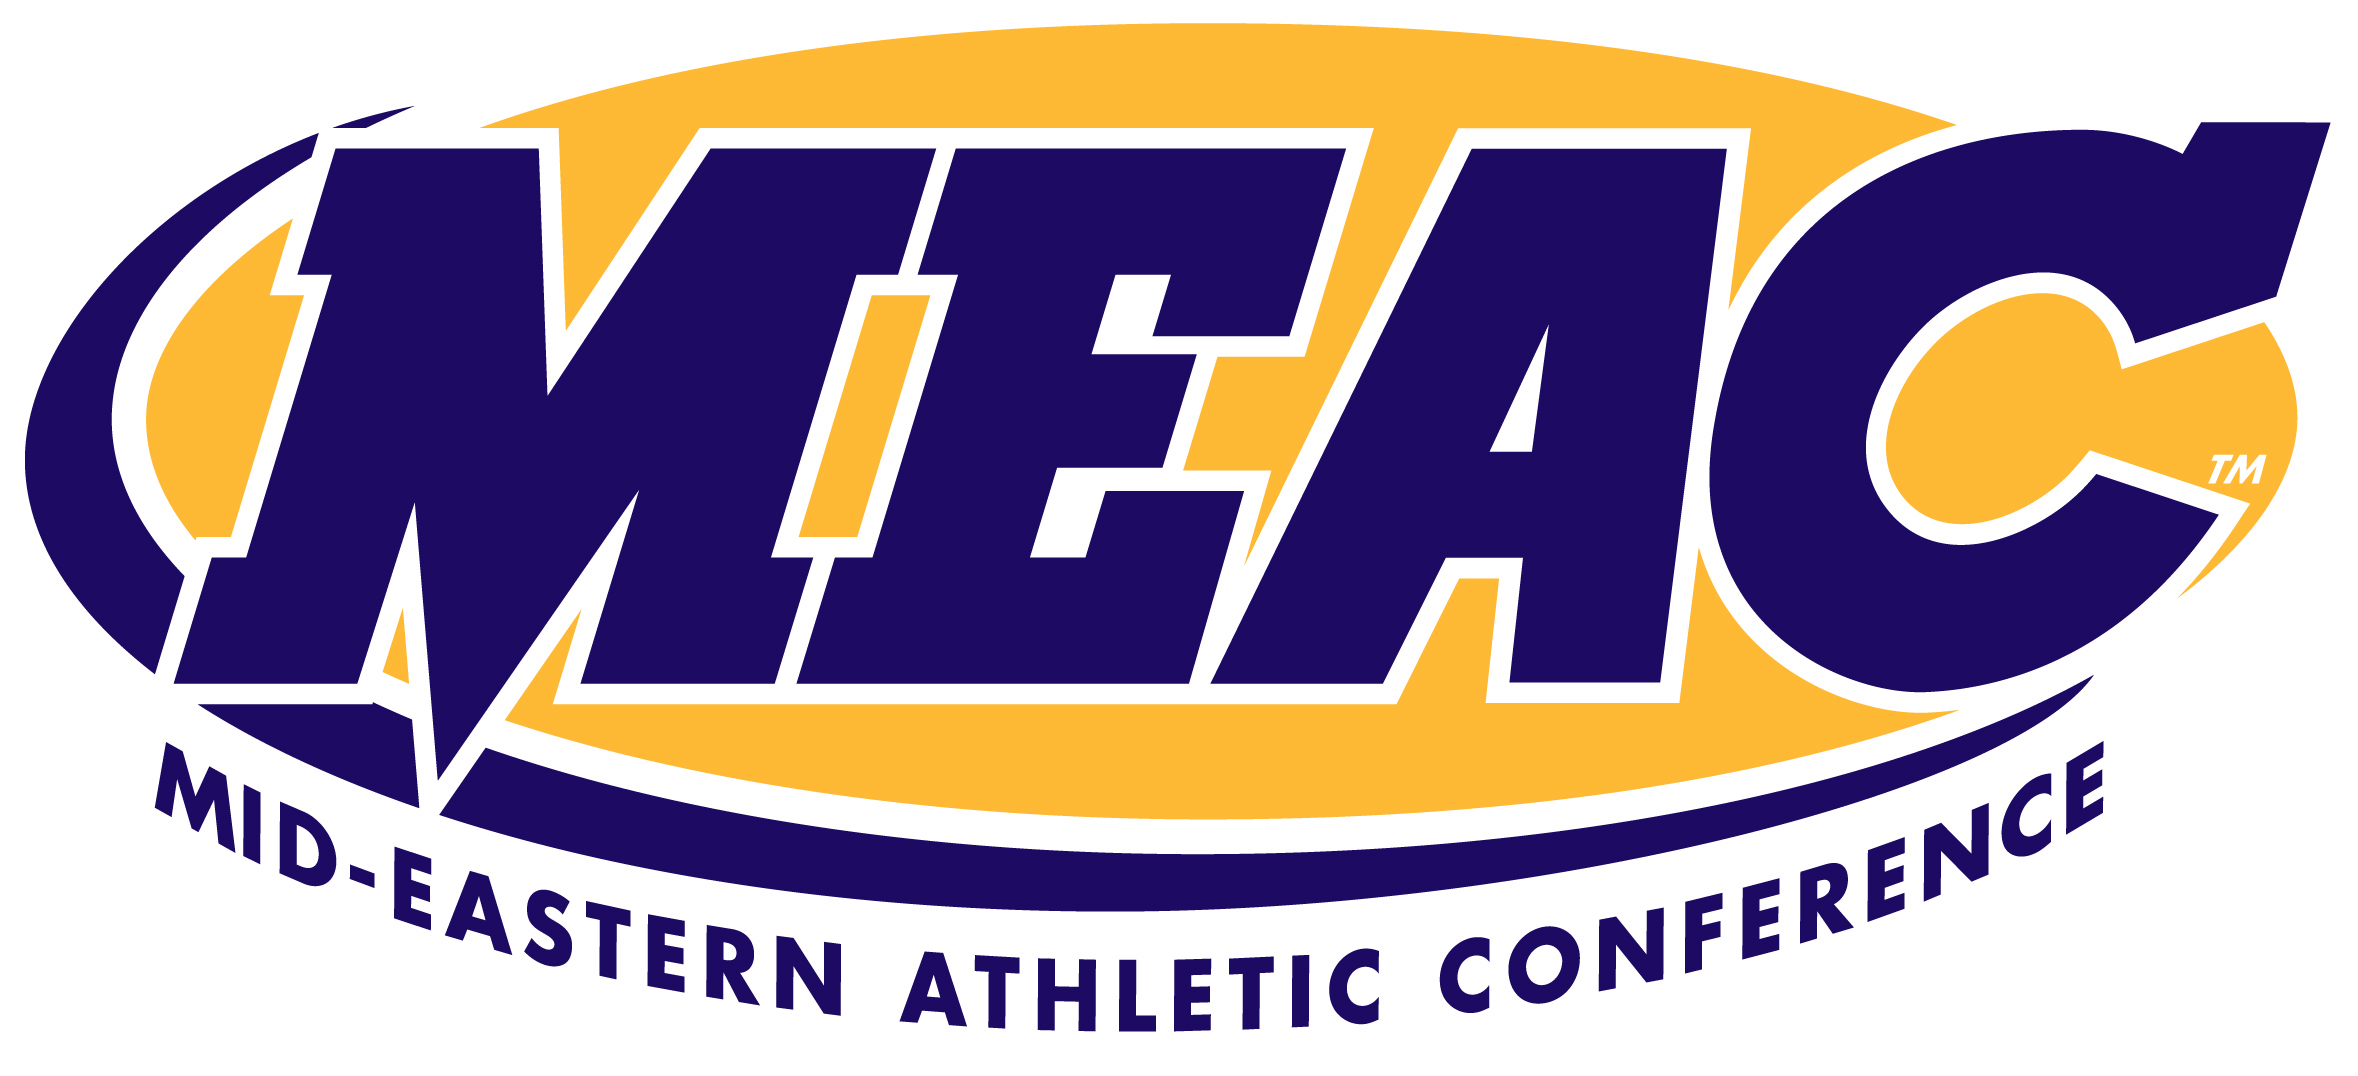 Mid-Eastern Athletic Conference (MEAC)